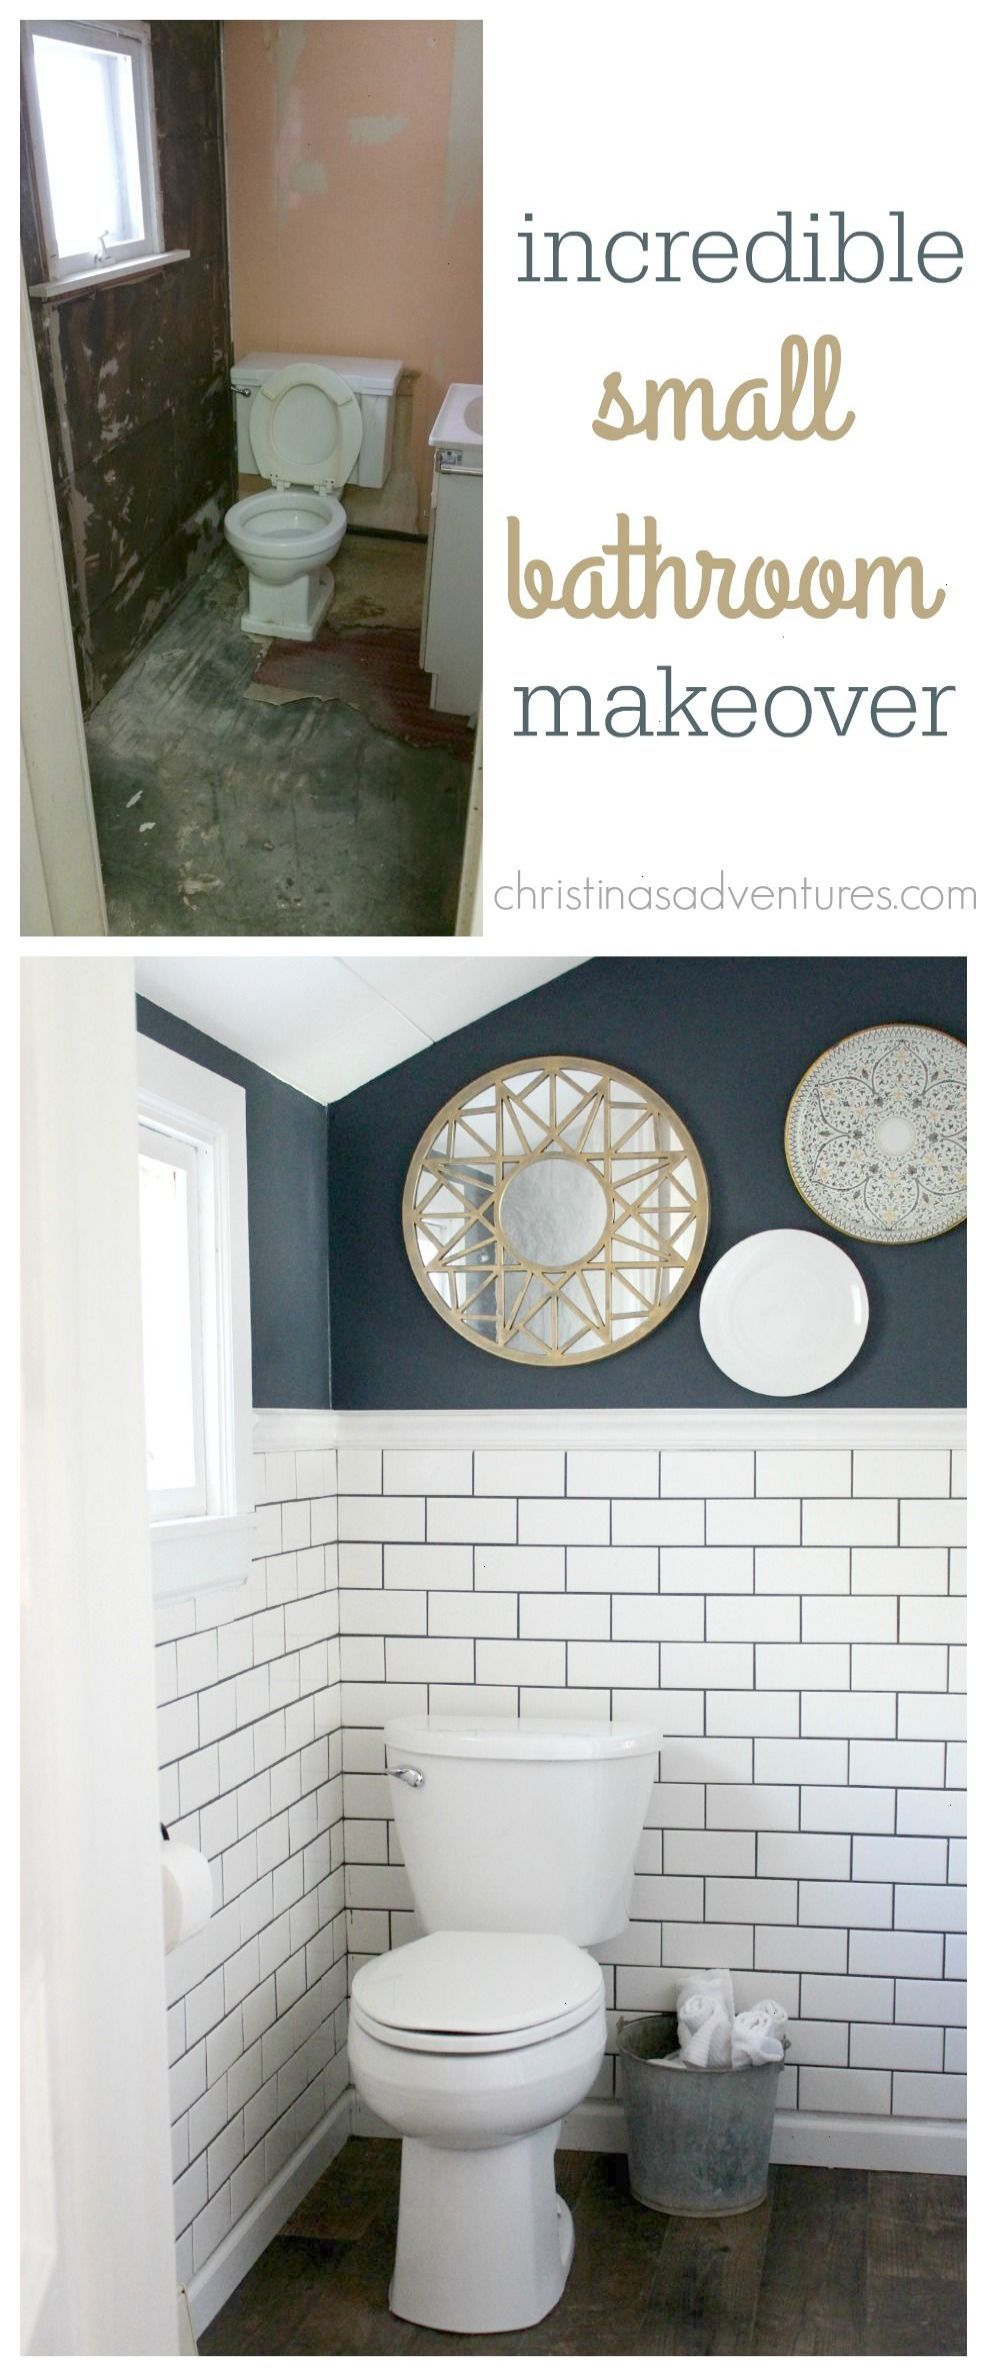 Woah One Of The Best Small Bathroom Transformations I Ve Ever Seen You Have To See All Of The Deta Small Bathroom Small Bathroom Makeover Bathroom Makeover